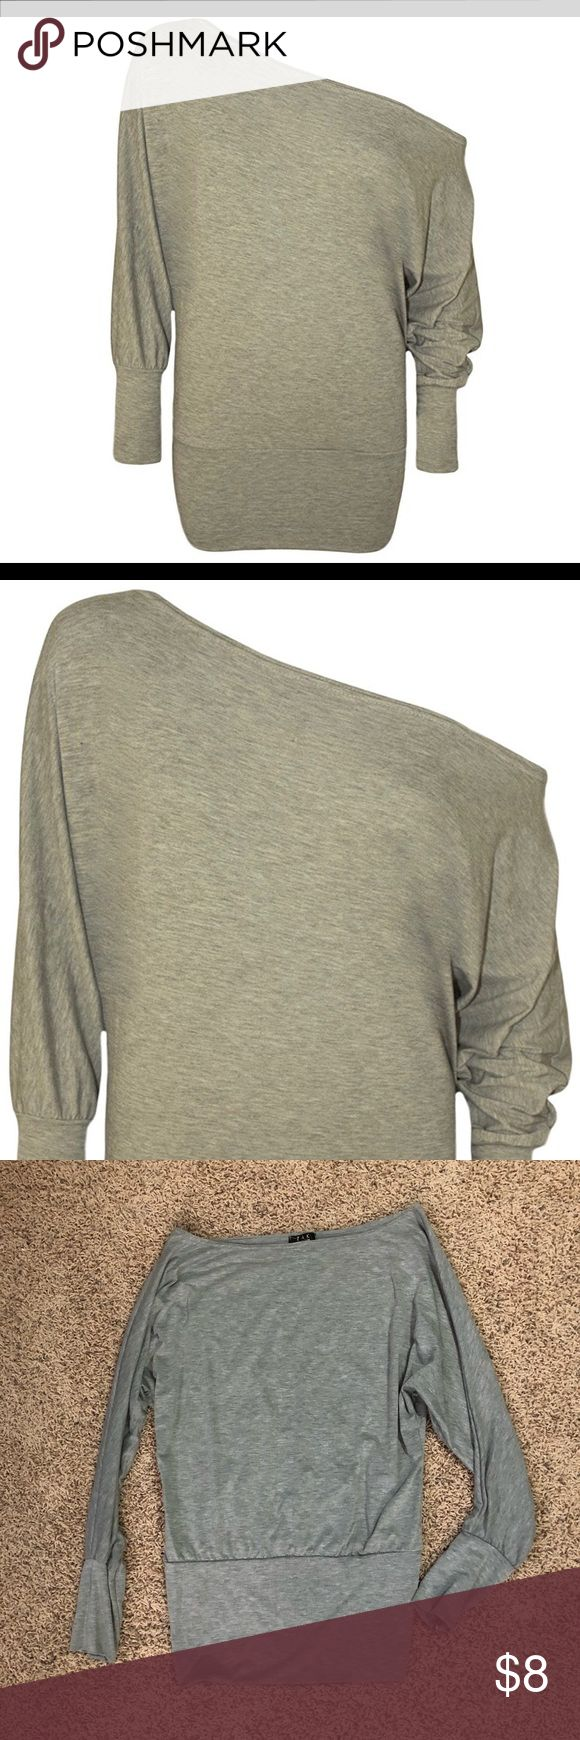 Grey off-shoulder batwing top Grey off-shoulder batwing top. The bottom is fitted with some stretch. This is a soft, Jersey like material. Goes with jeans or leggings. Size 12-14 but fits small. Tops Tees - Long Sleeve